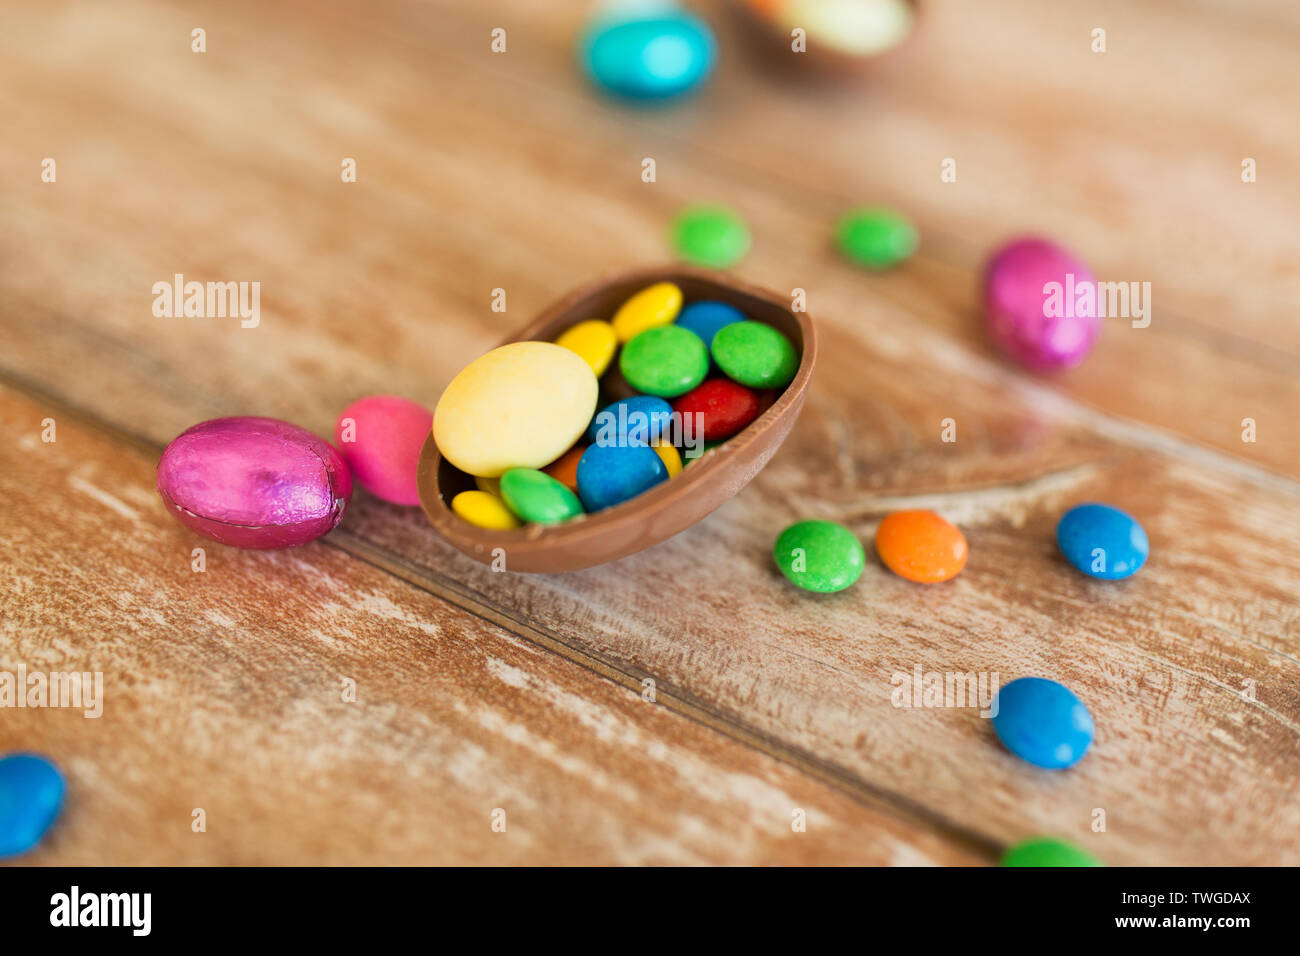 chocolate egg and candy drops on wooden table - Stock Image